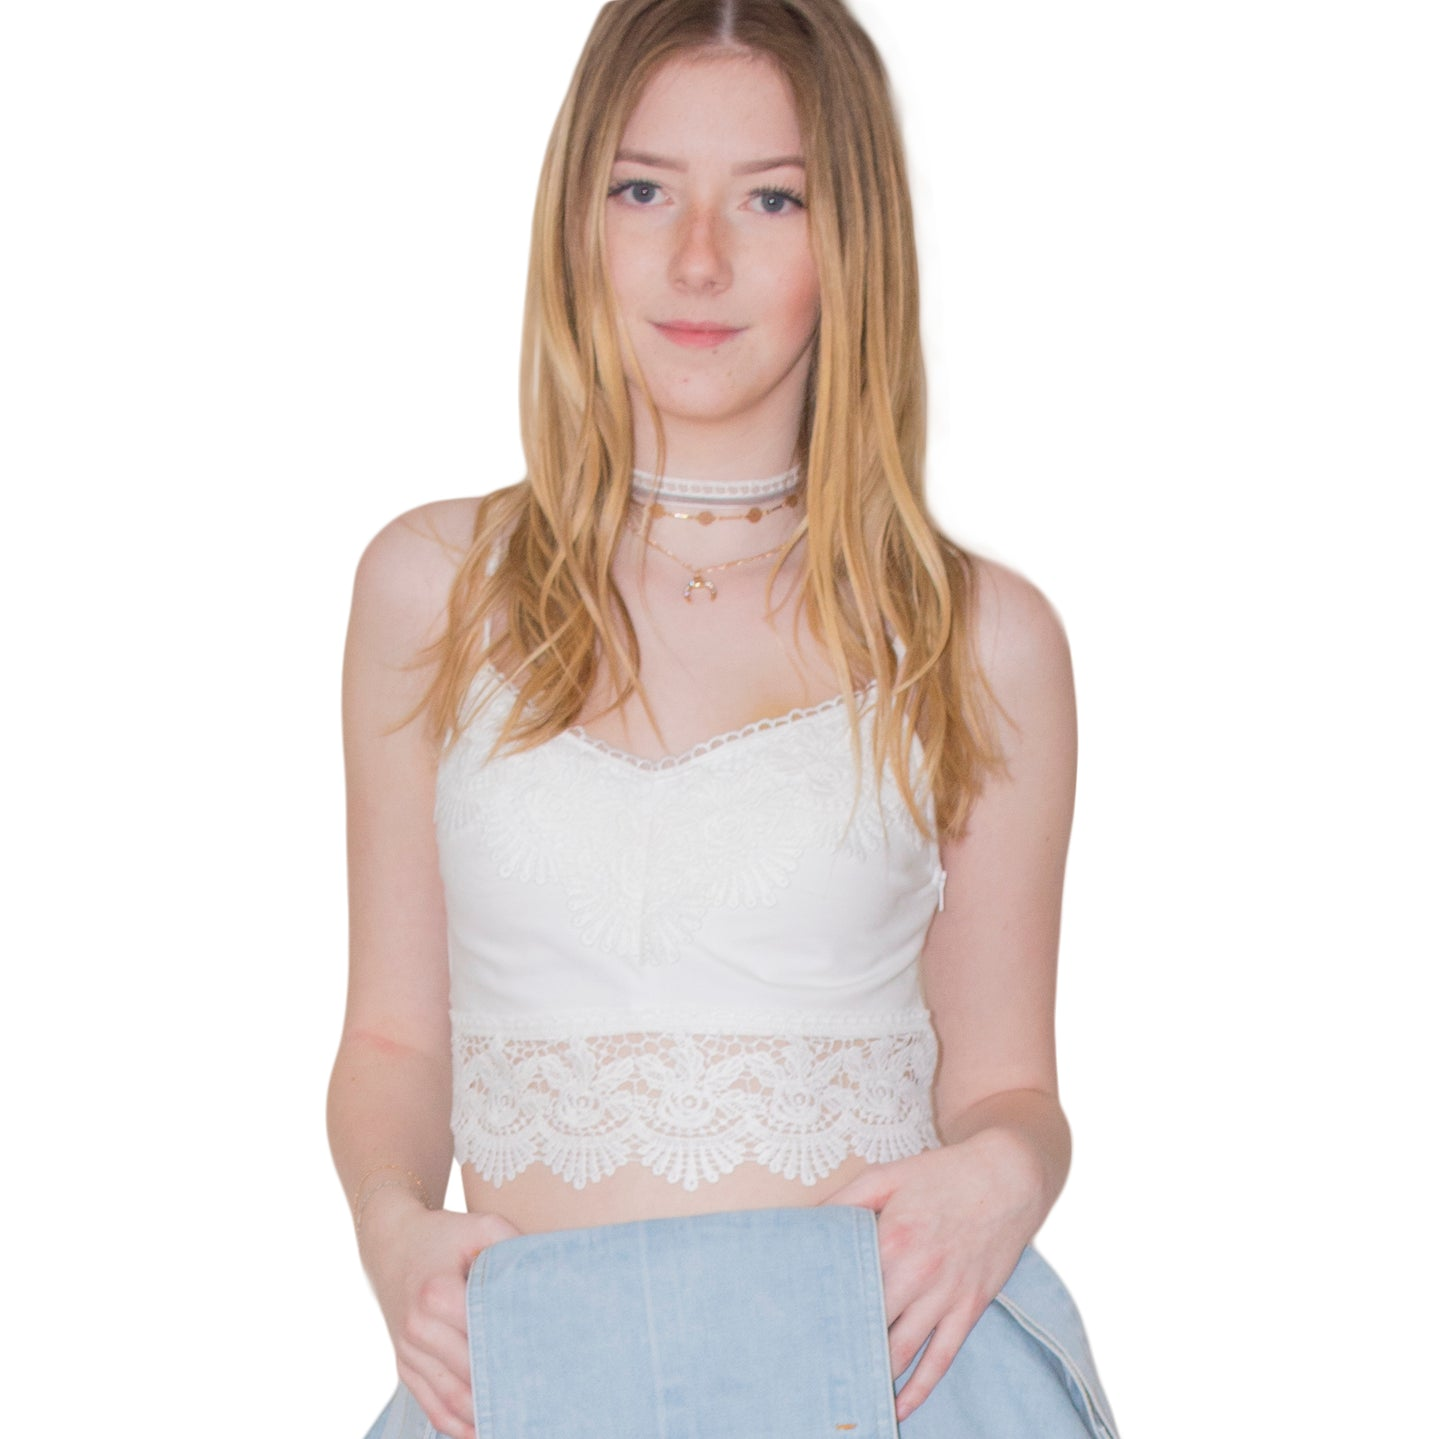 LACHERE White Bralette - LACHERE